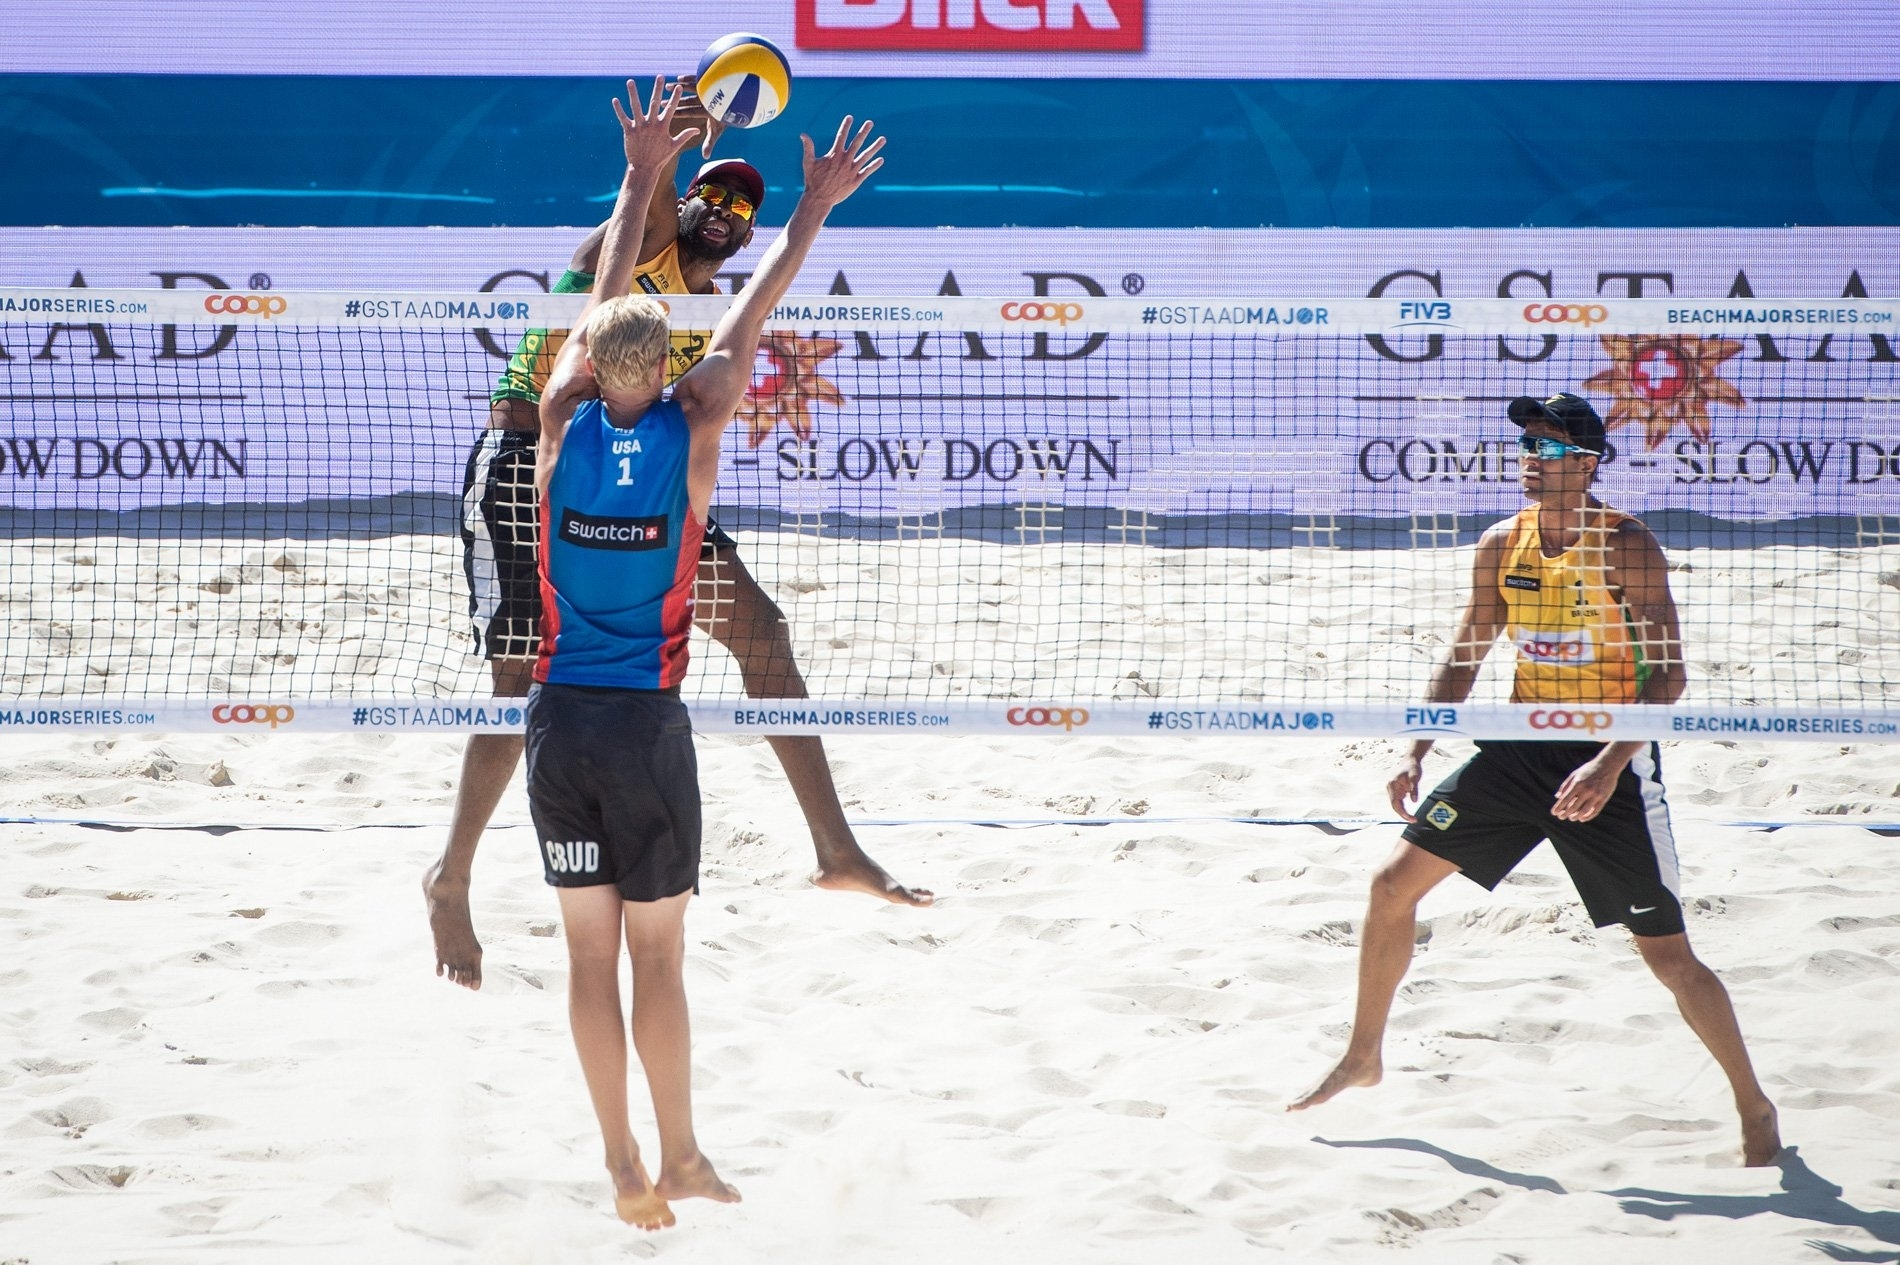 Budinger (in blue) blocks Evandro at the net on the way to a shock straight sets victory